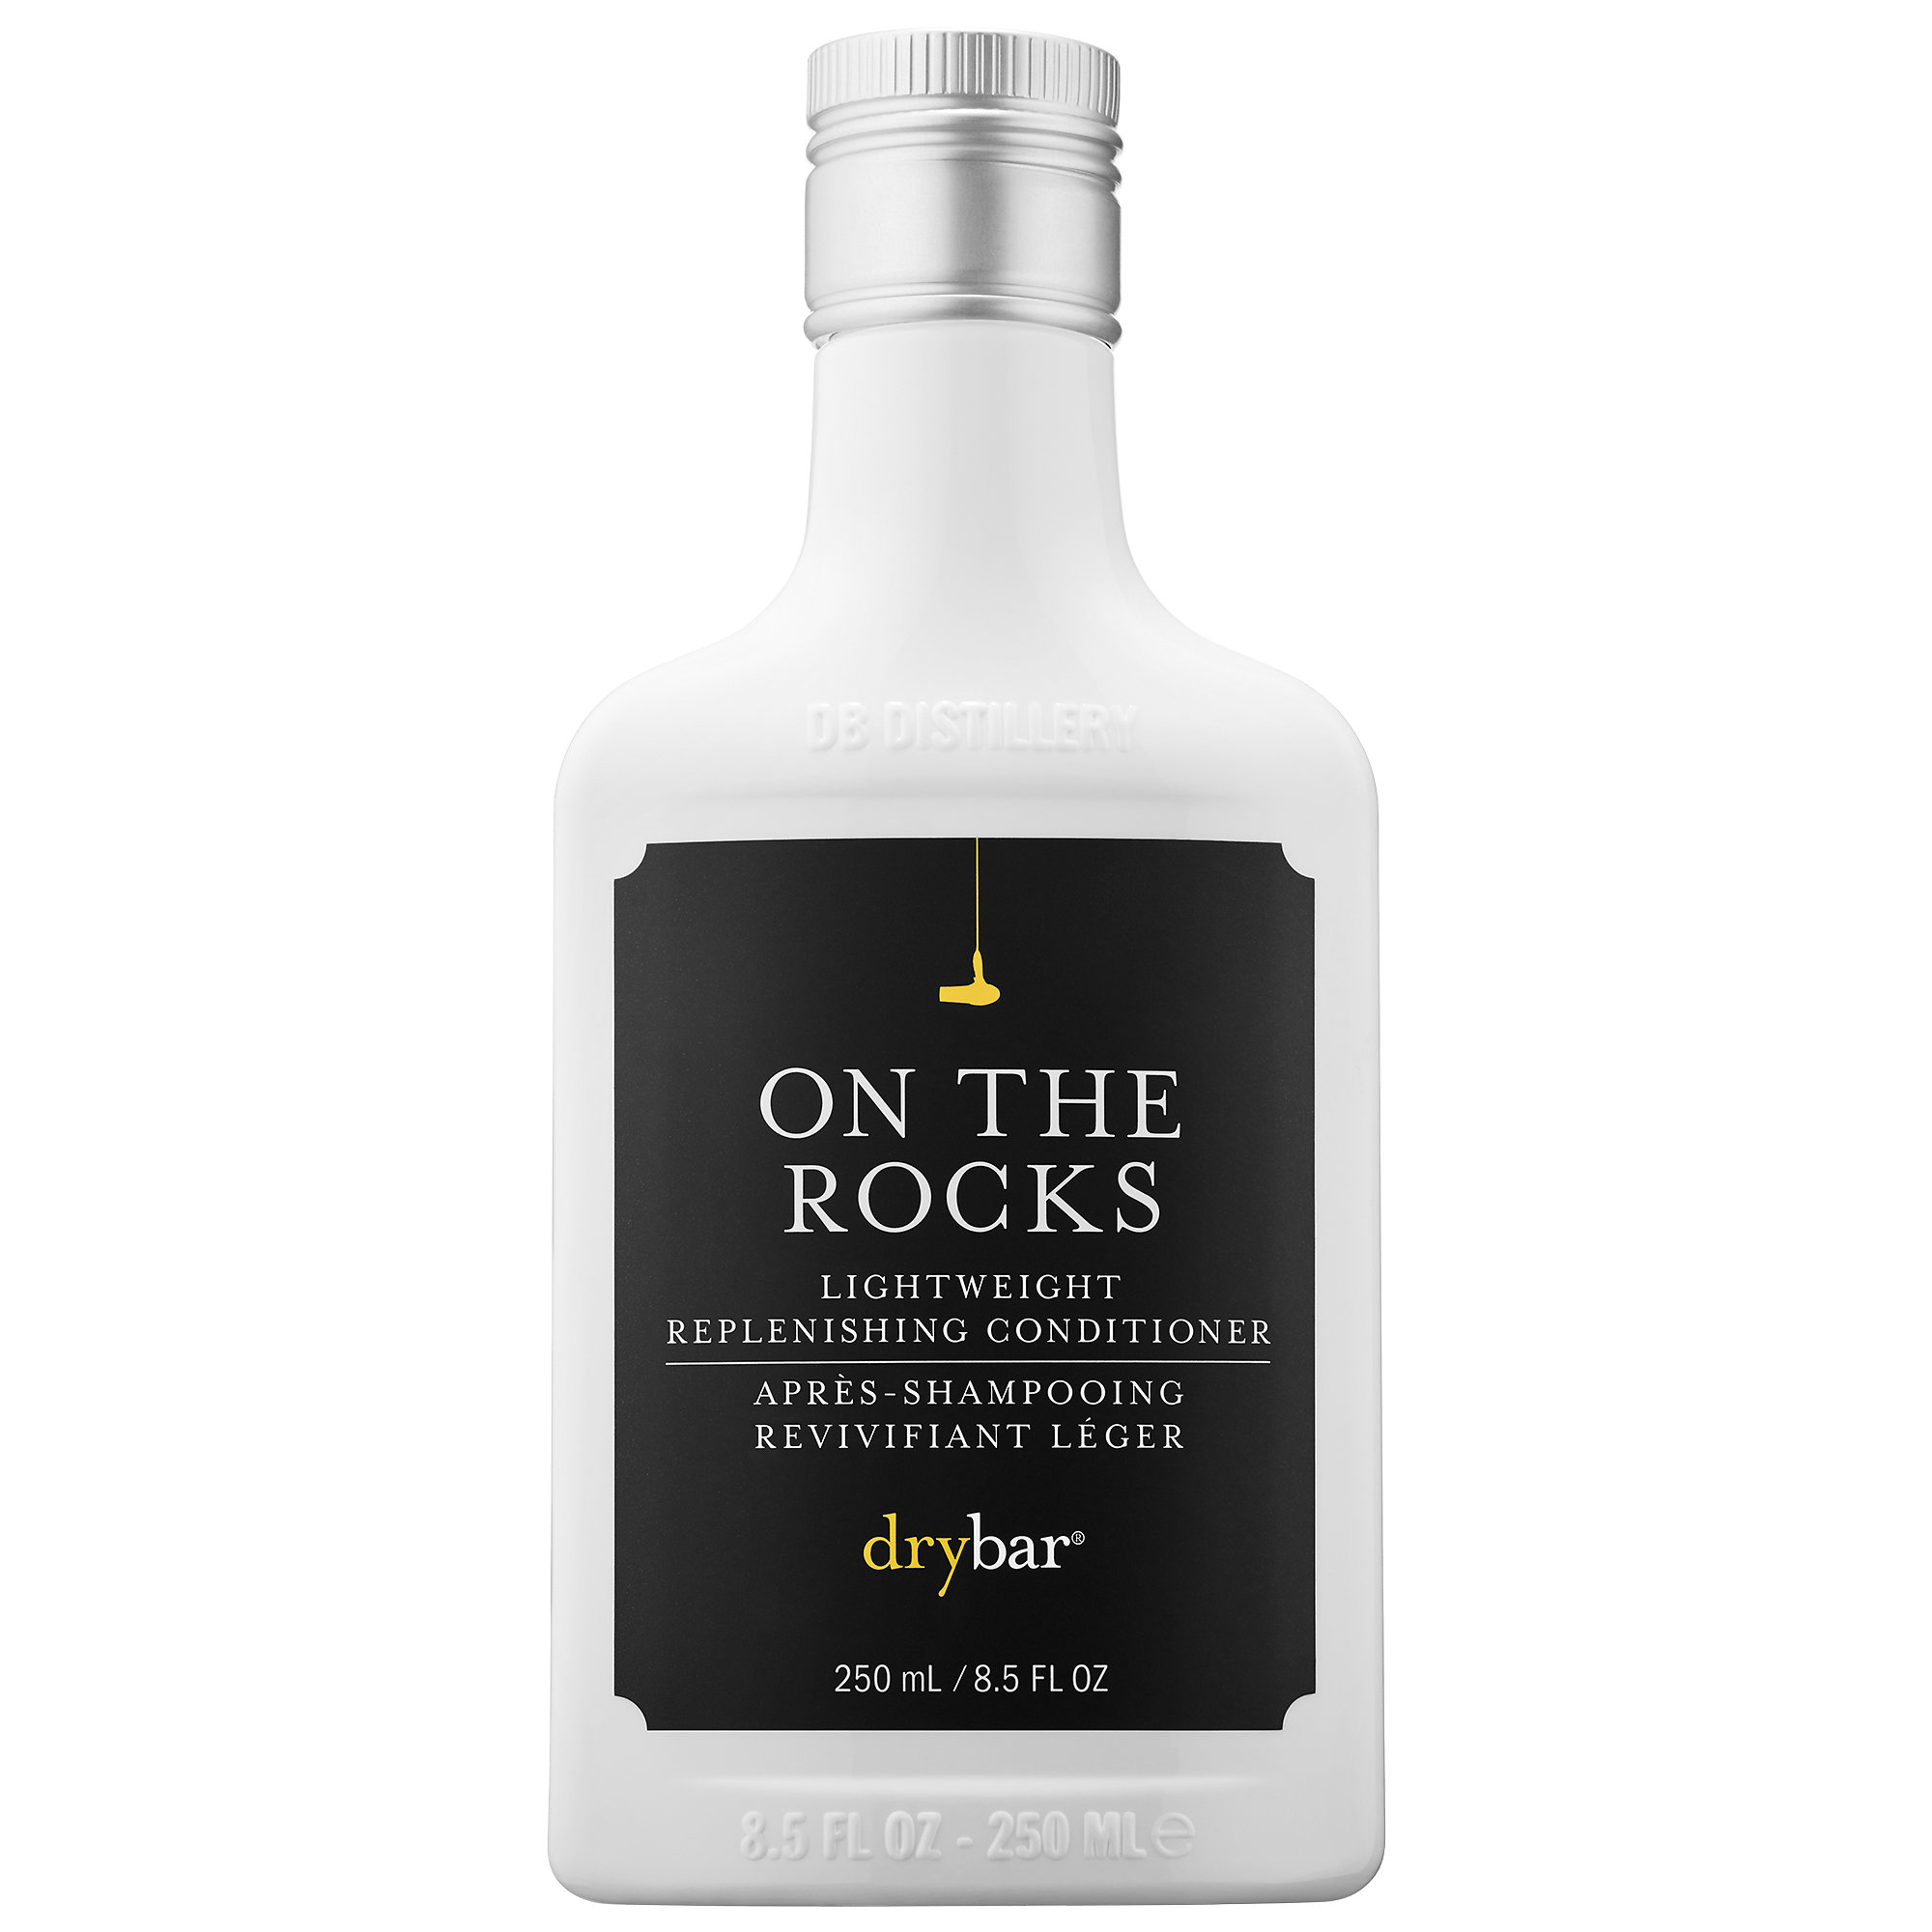 On The Rocks Drybar Conditioner